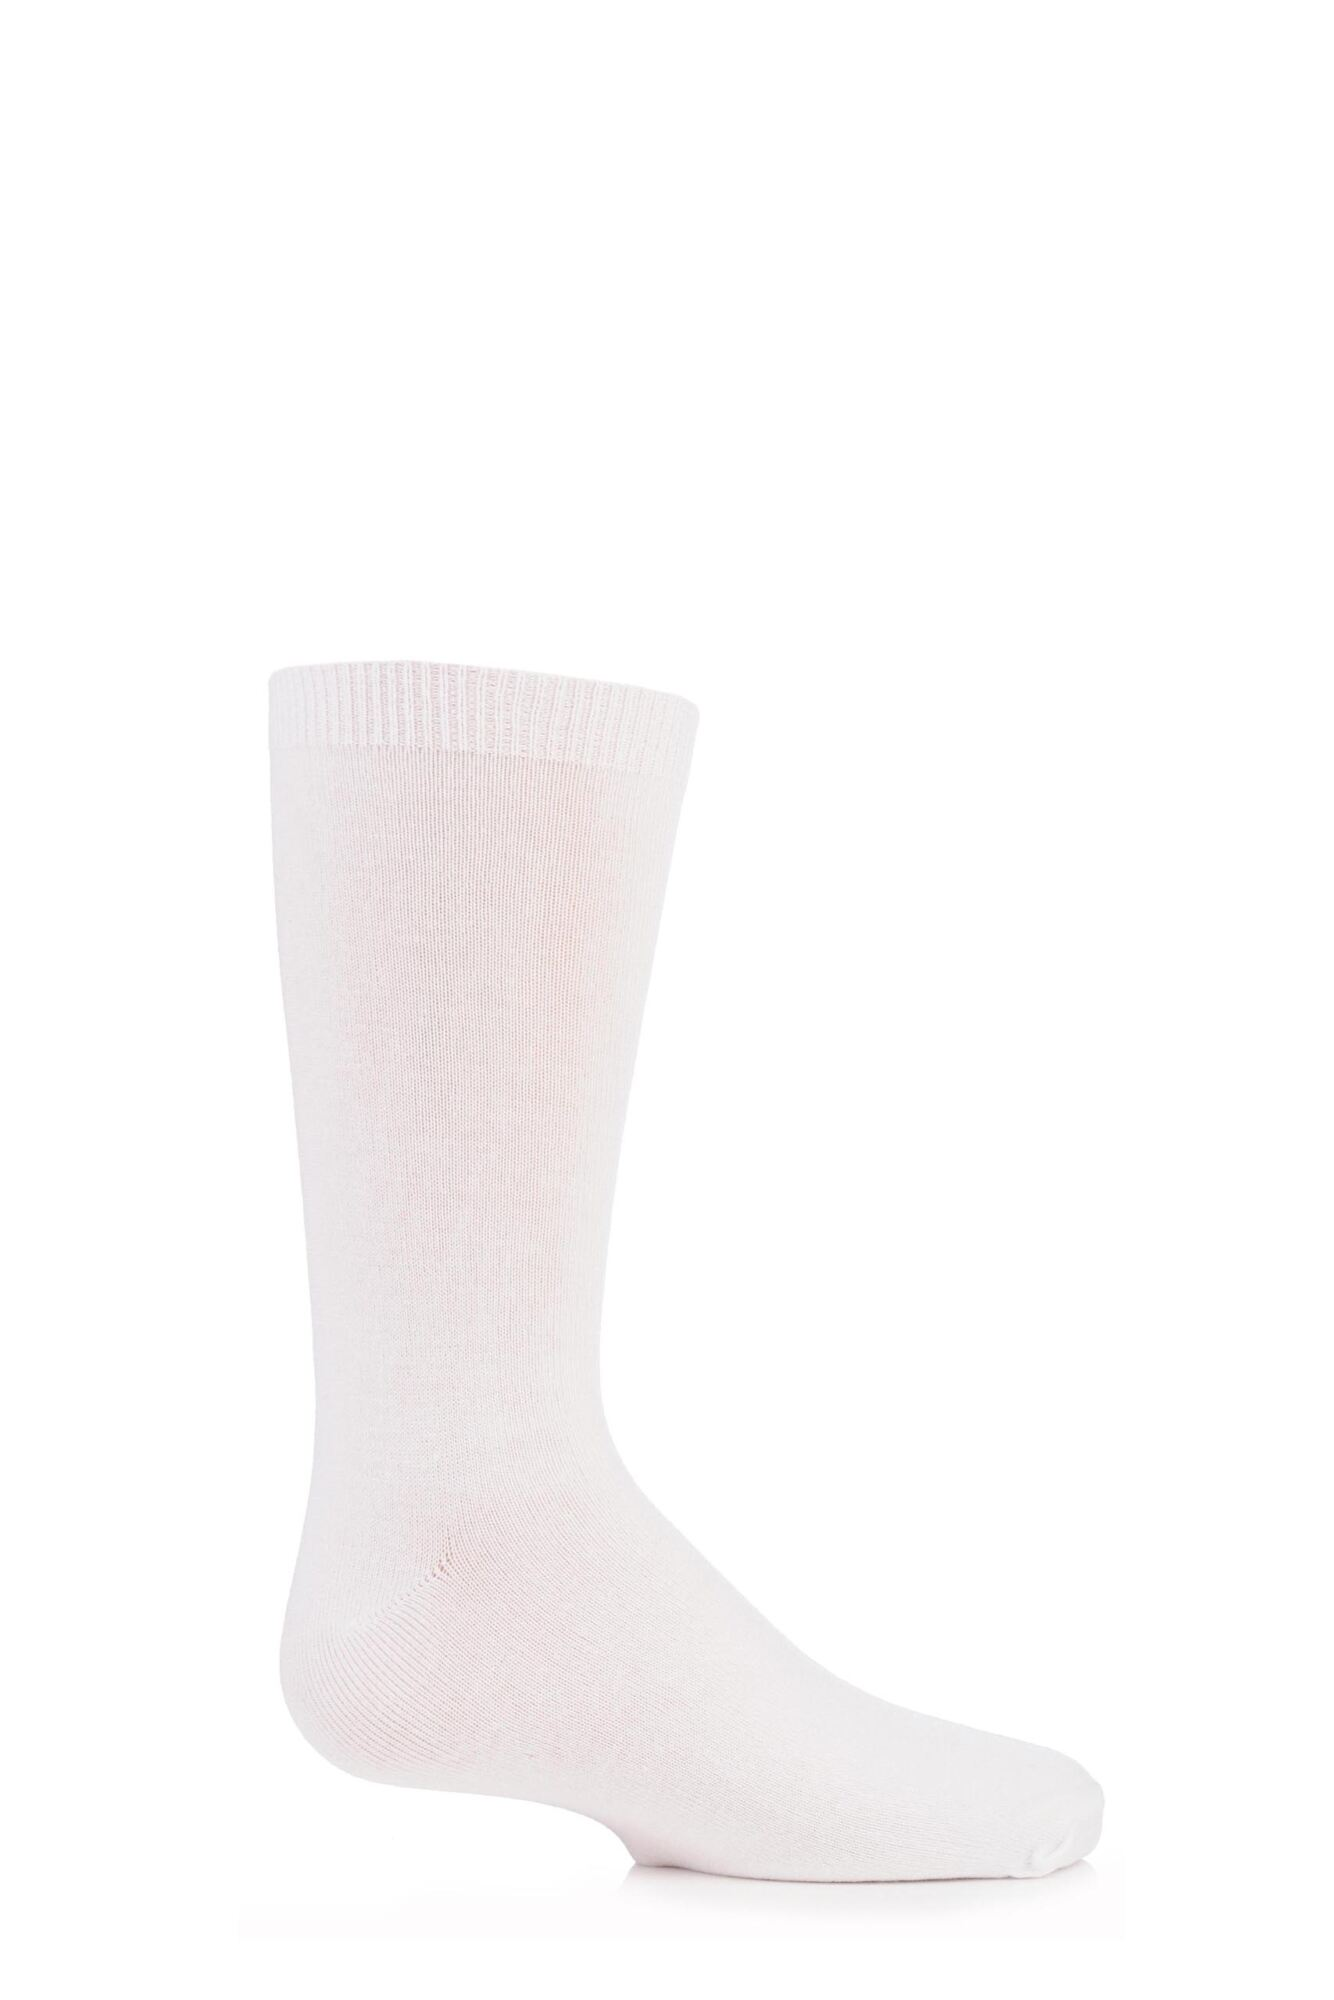 1 Pair Plain Bamboo Socks with Comfort Cuff and Smooth Toe Seams Kids Unisex - SOCKSHOP